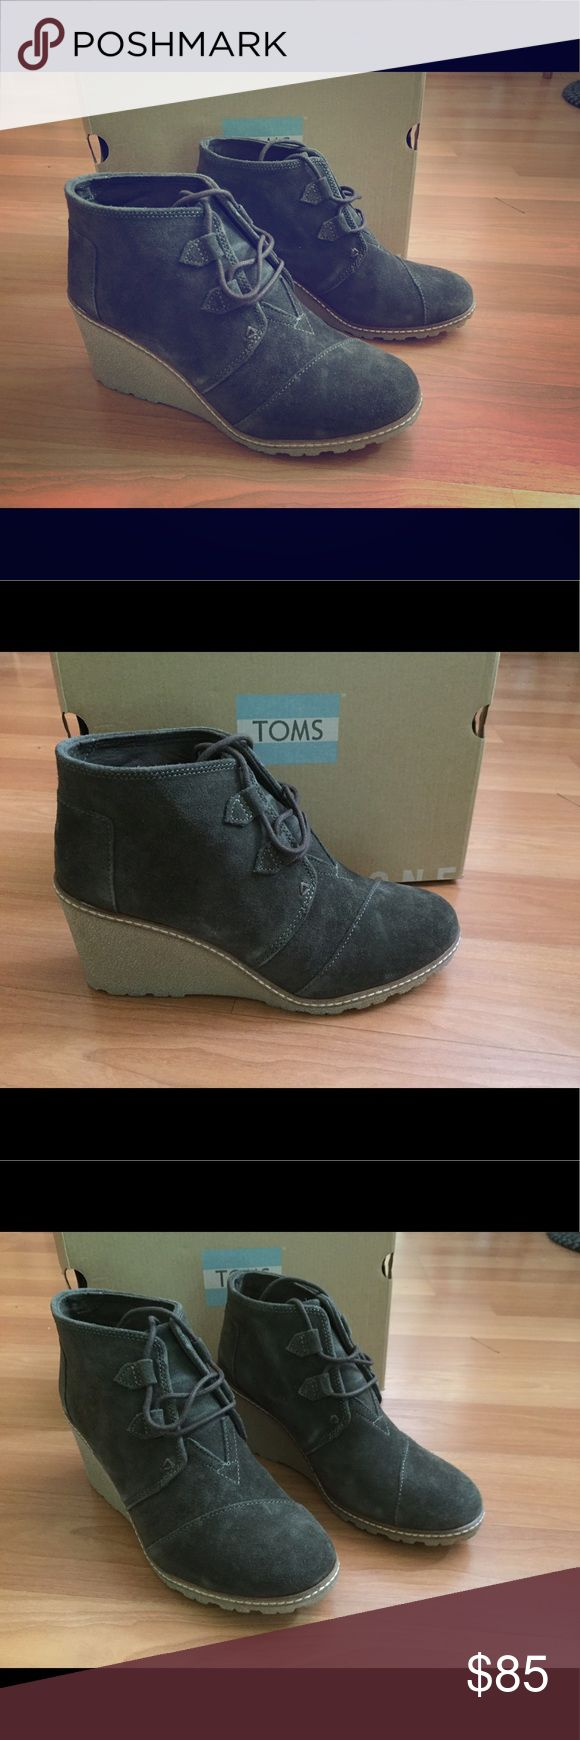 TOMS Desert wedge Boot TOMS Desert Wedge - Tarmac Olive Suede with Faux Crepe Wedge.  Size Women's 8.  Medium width. TOMS Shoes Ankle Boots & Booties